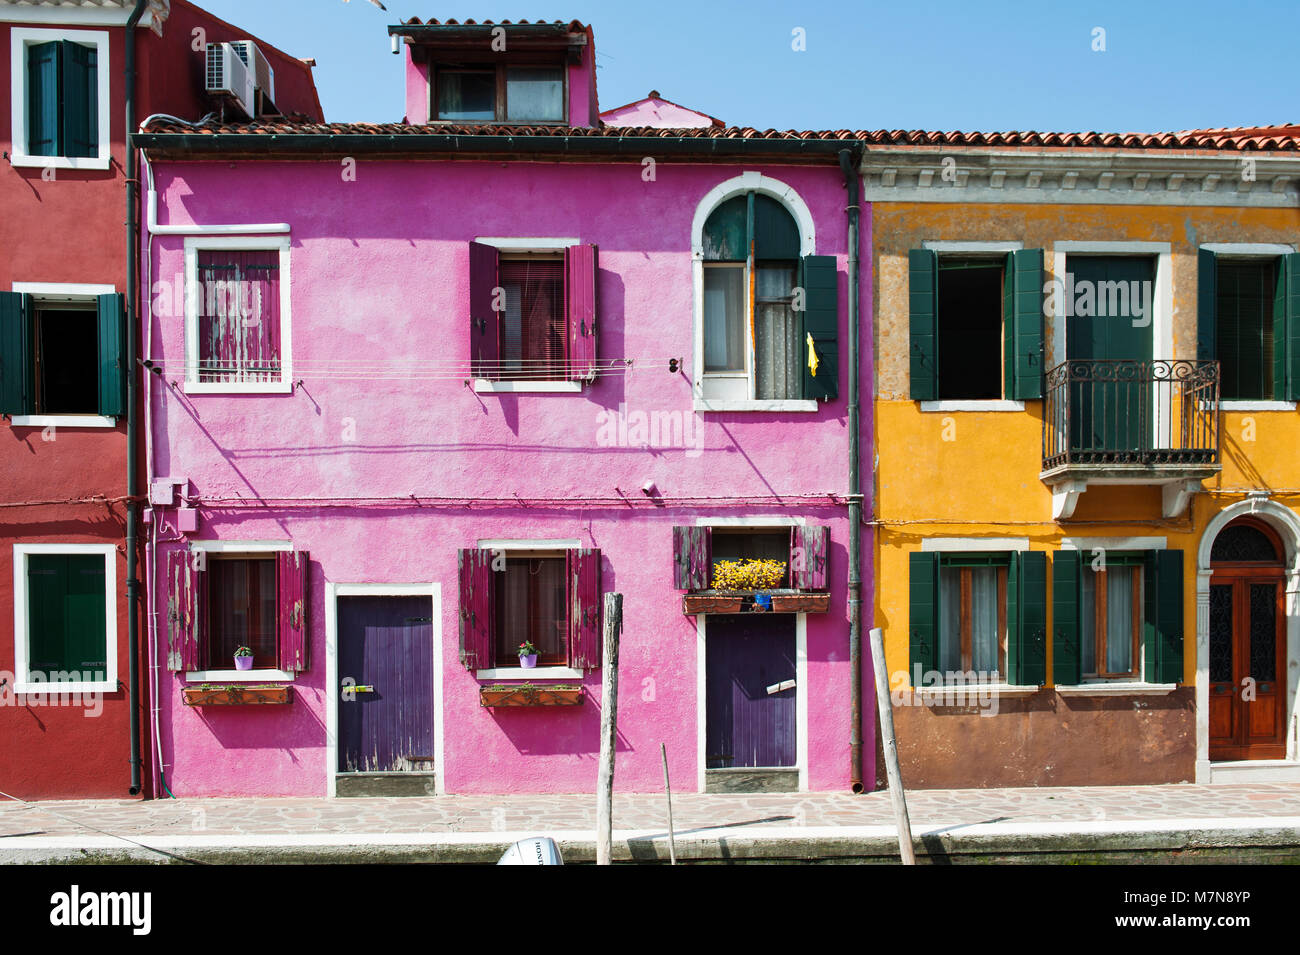 Colorful houses in Burano island, Venice, Italy, Europe - Stock Image